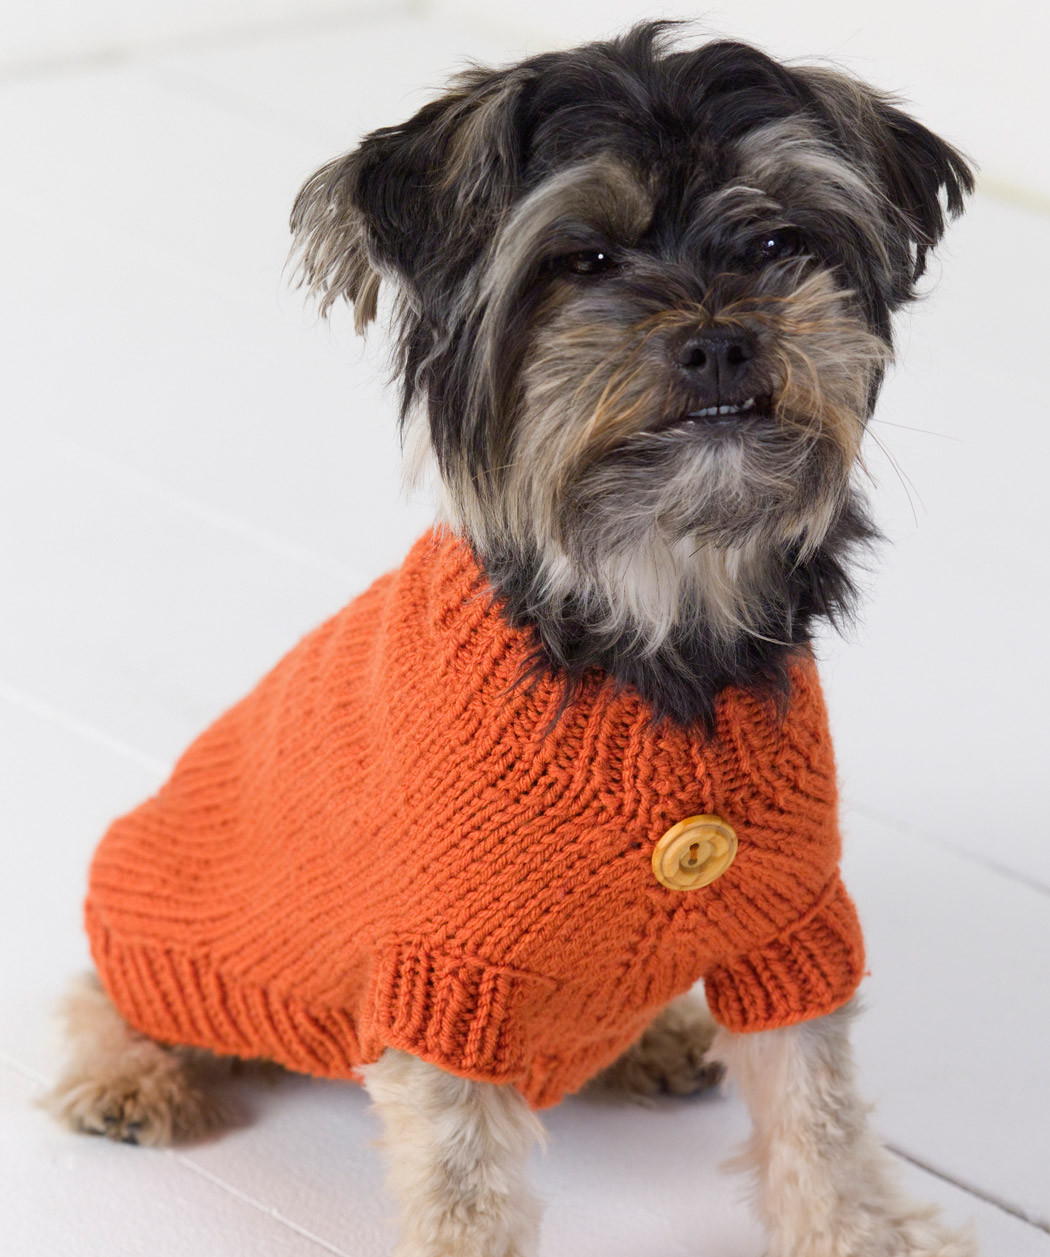 Unique Dog Sweater Knitting Pattern Knitting Patterns for Dog Sweaters for Beginners Of Luxury 41 Pictures Knitting Patterns for Dog Sweaters for Beginners